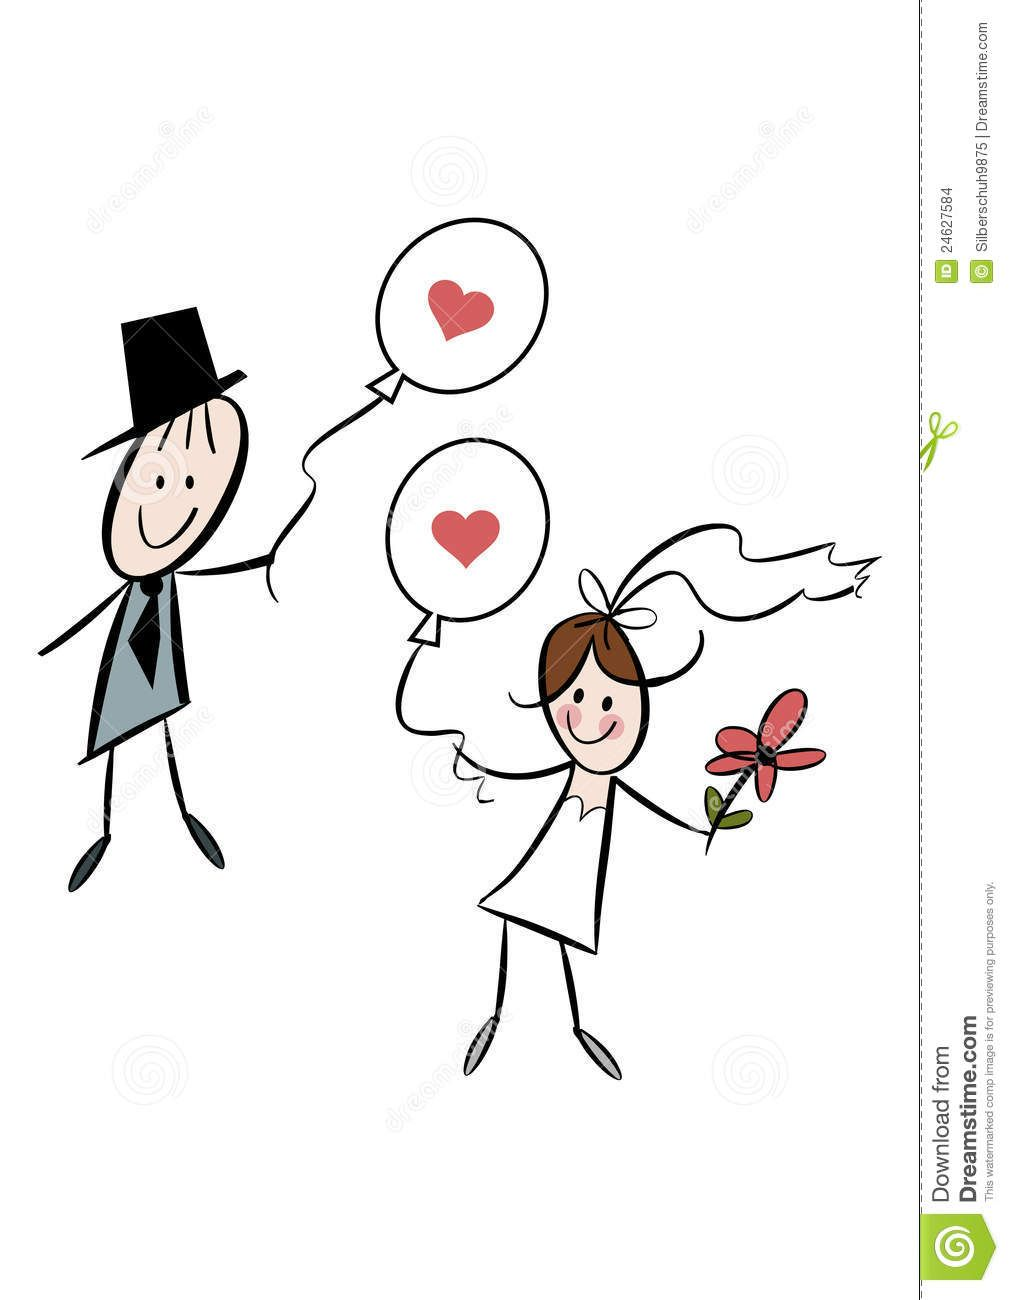 Funny Bride And Groom Clipart Cute Cartoon Bride And Groom.